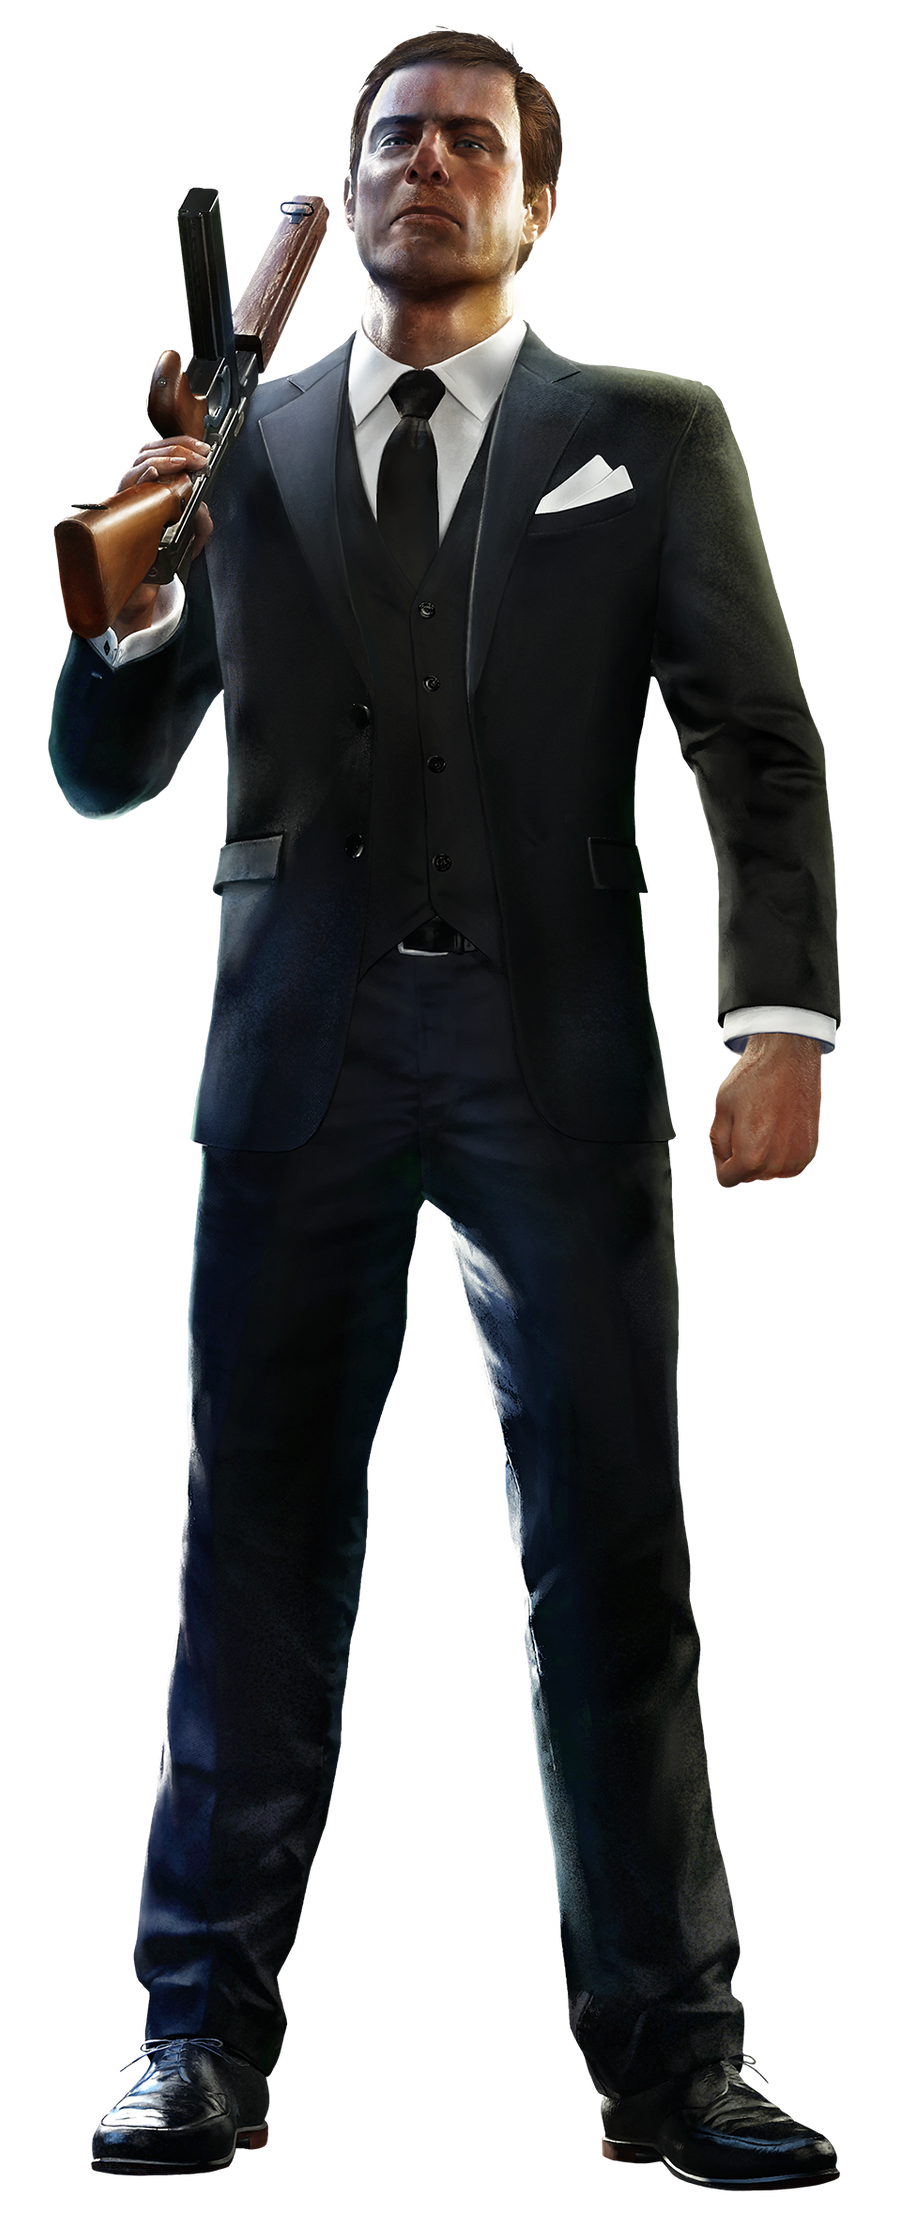 Mafia 3 Tommy Marcano Png 1 By Xgamergreaserx On Deviantart